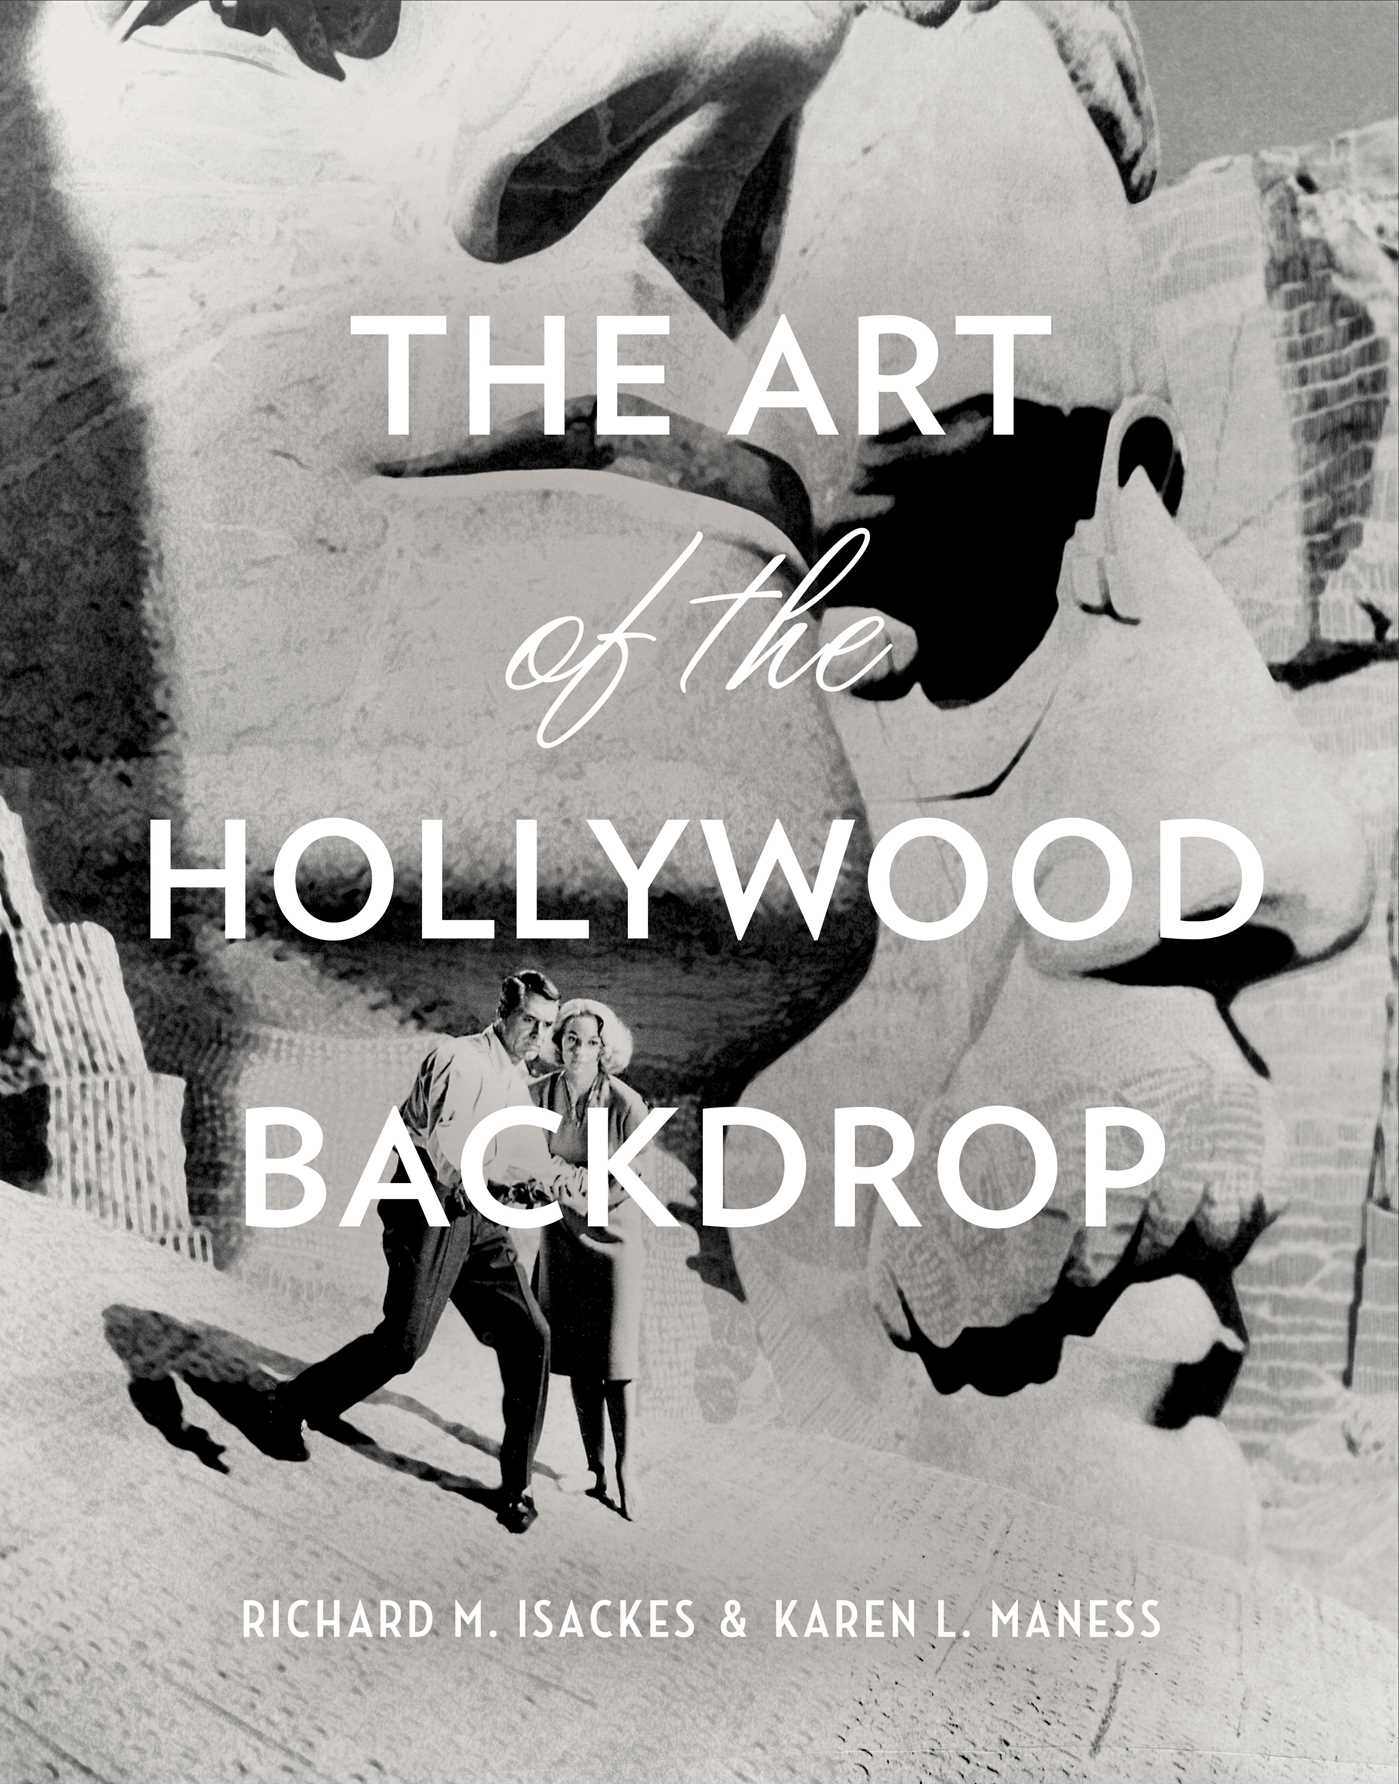 The art of the hollywood backdrop 9781941393086 hr